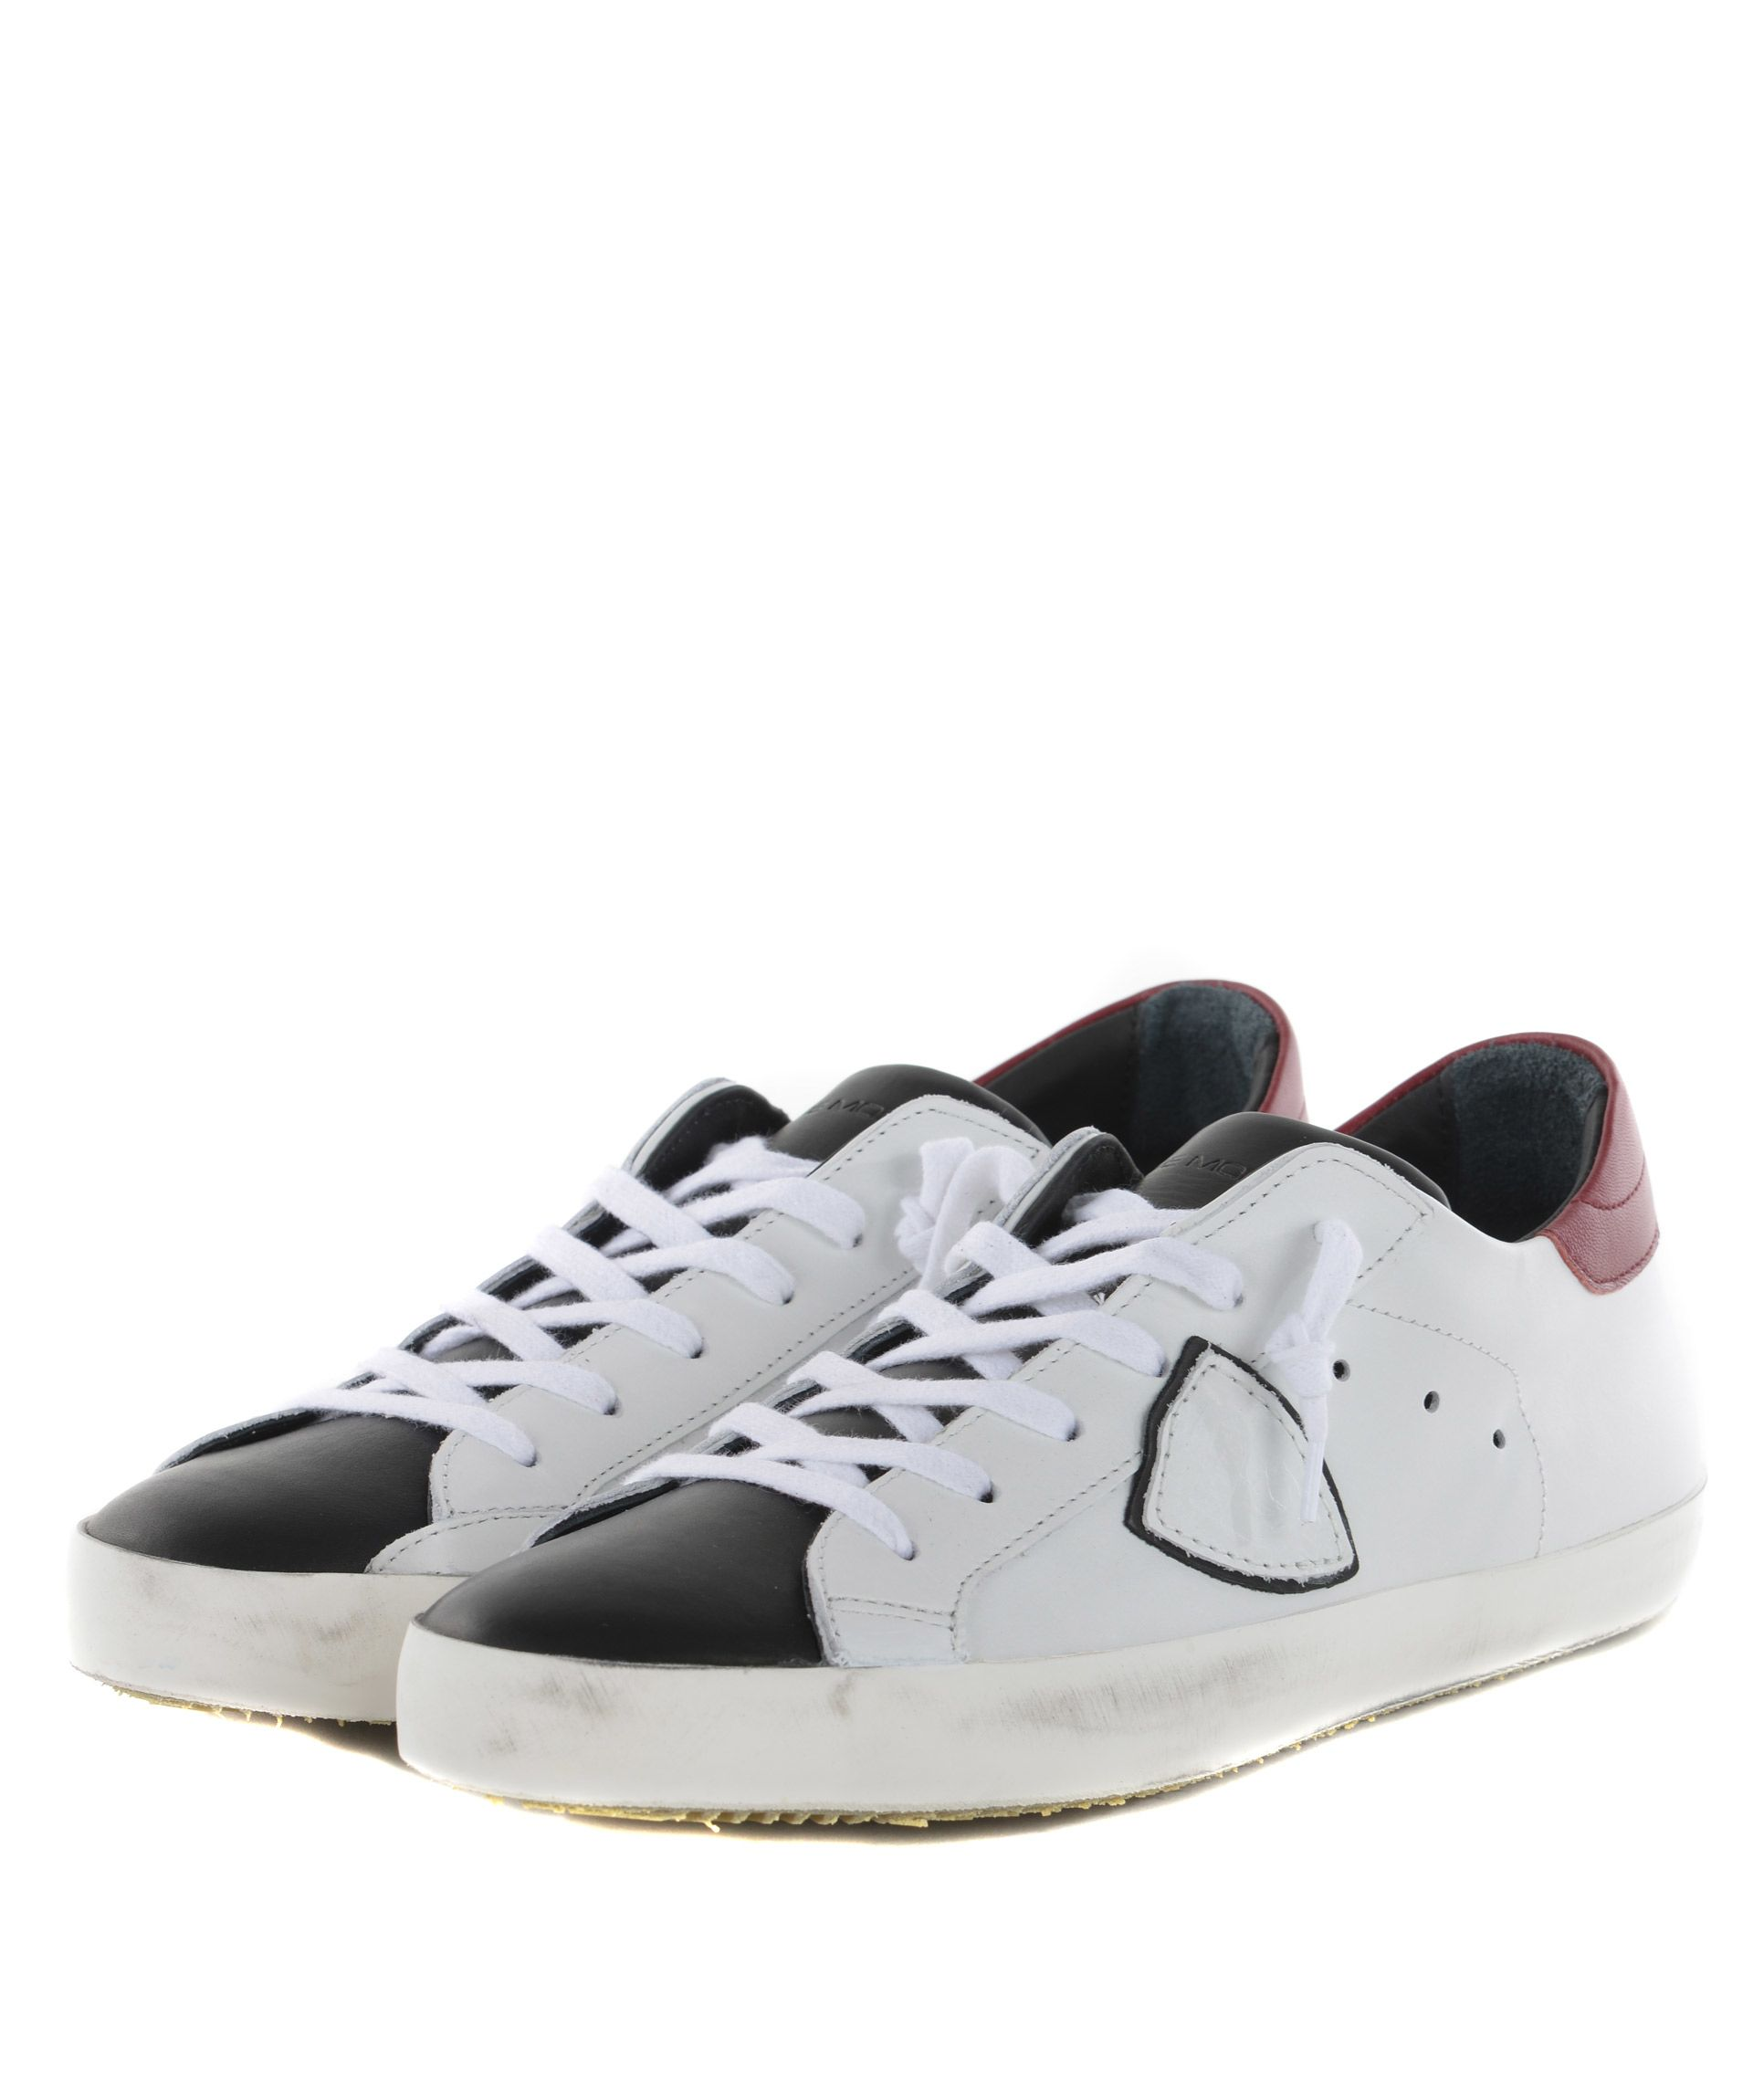 Philippe Model Classic Sneakers